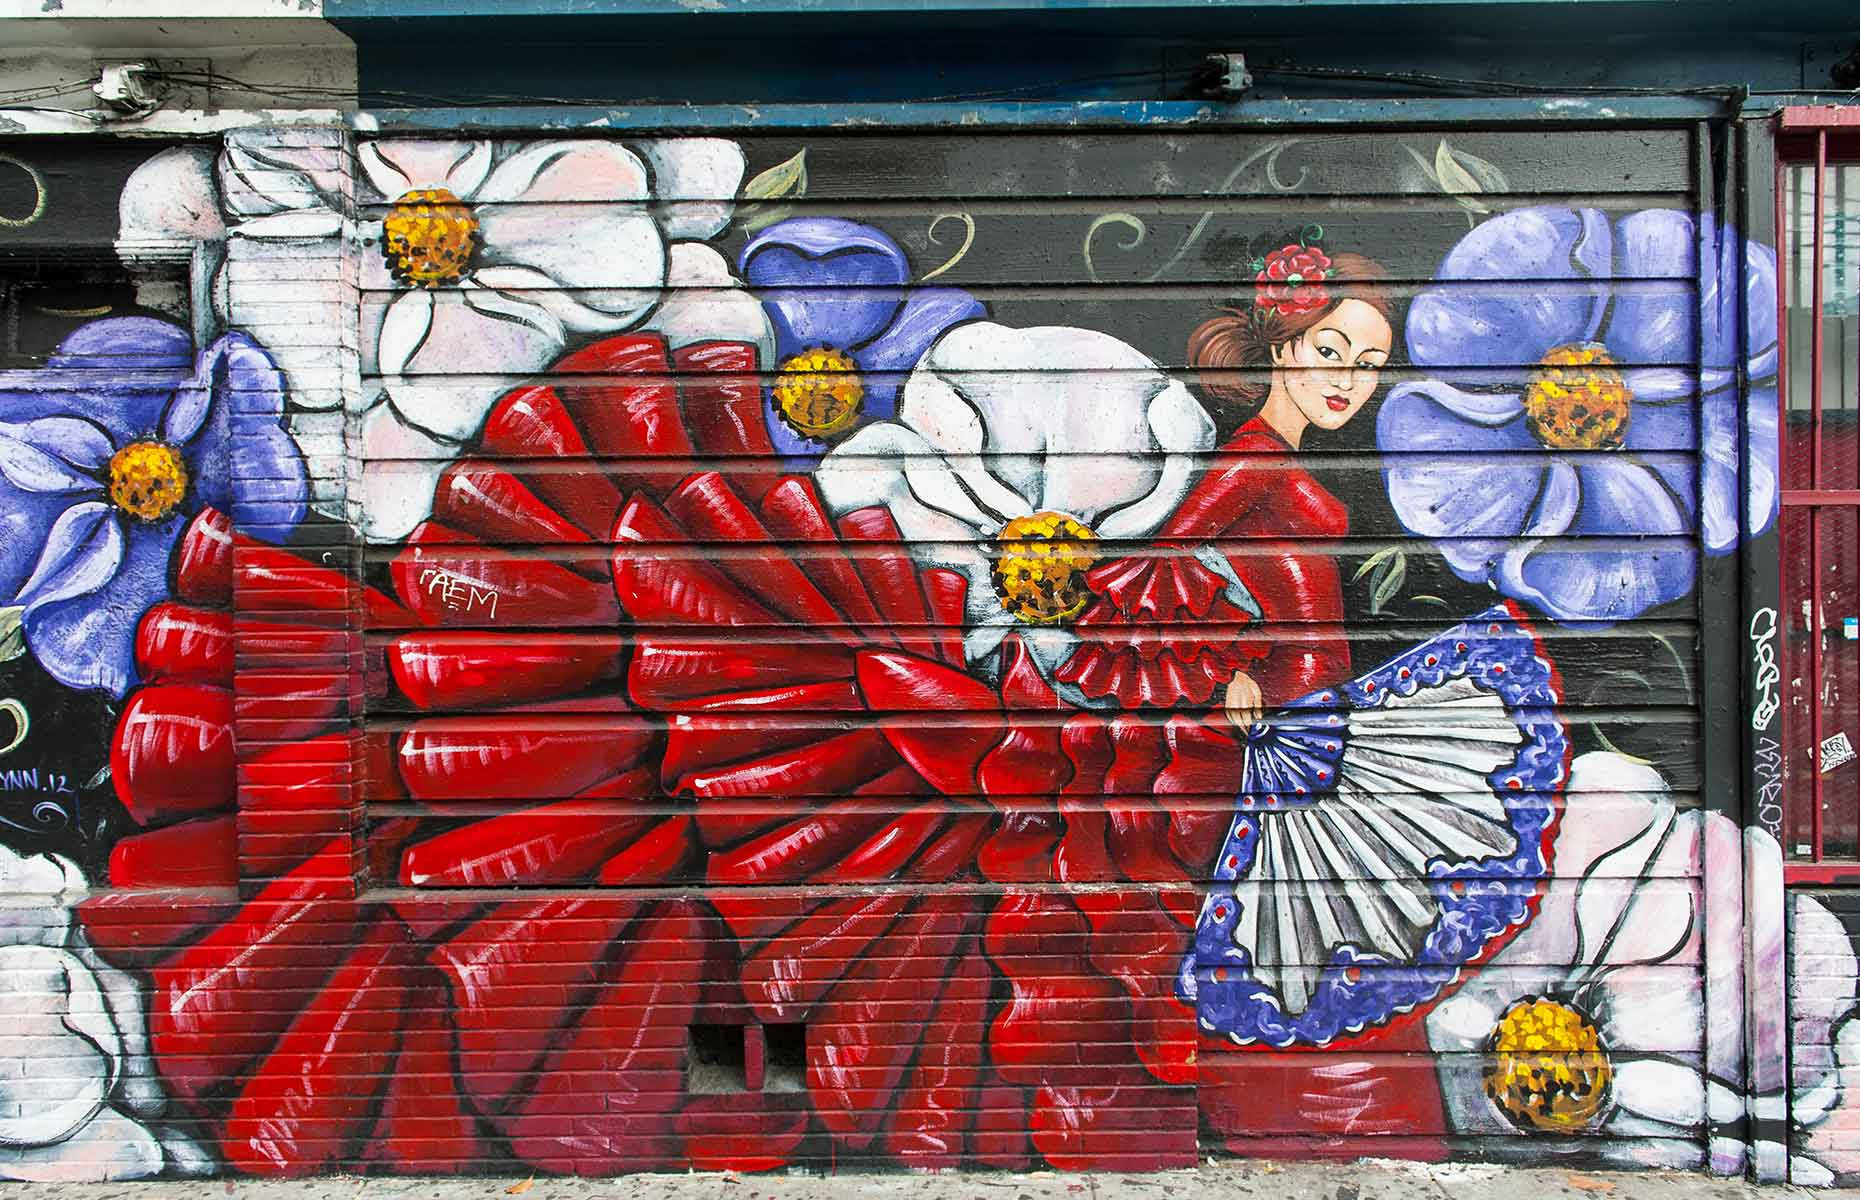 Mission District mural (Image: Julien Hautcoeur/Shutterstock)